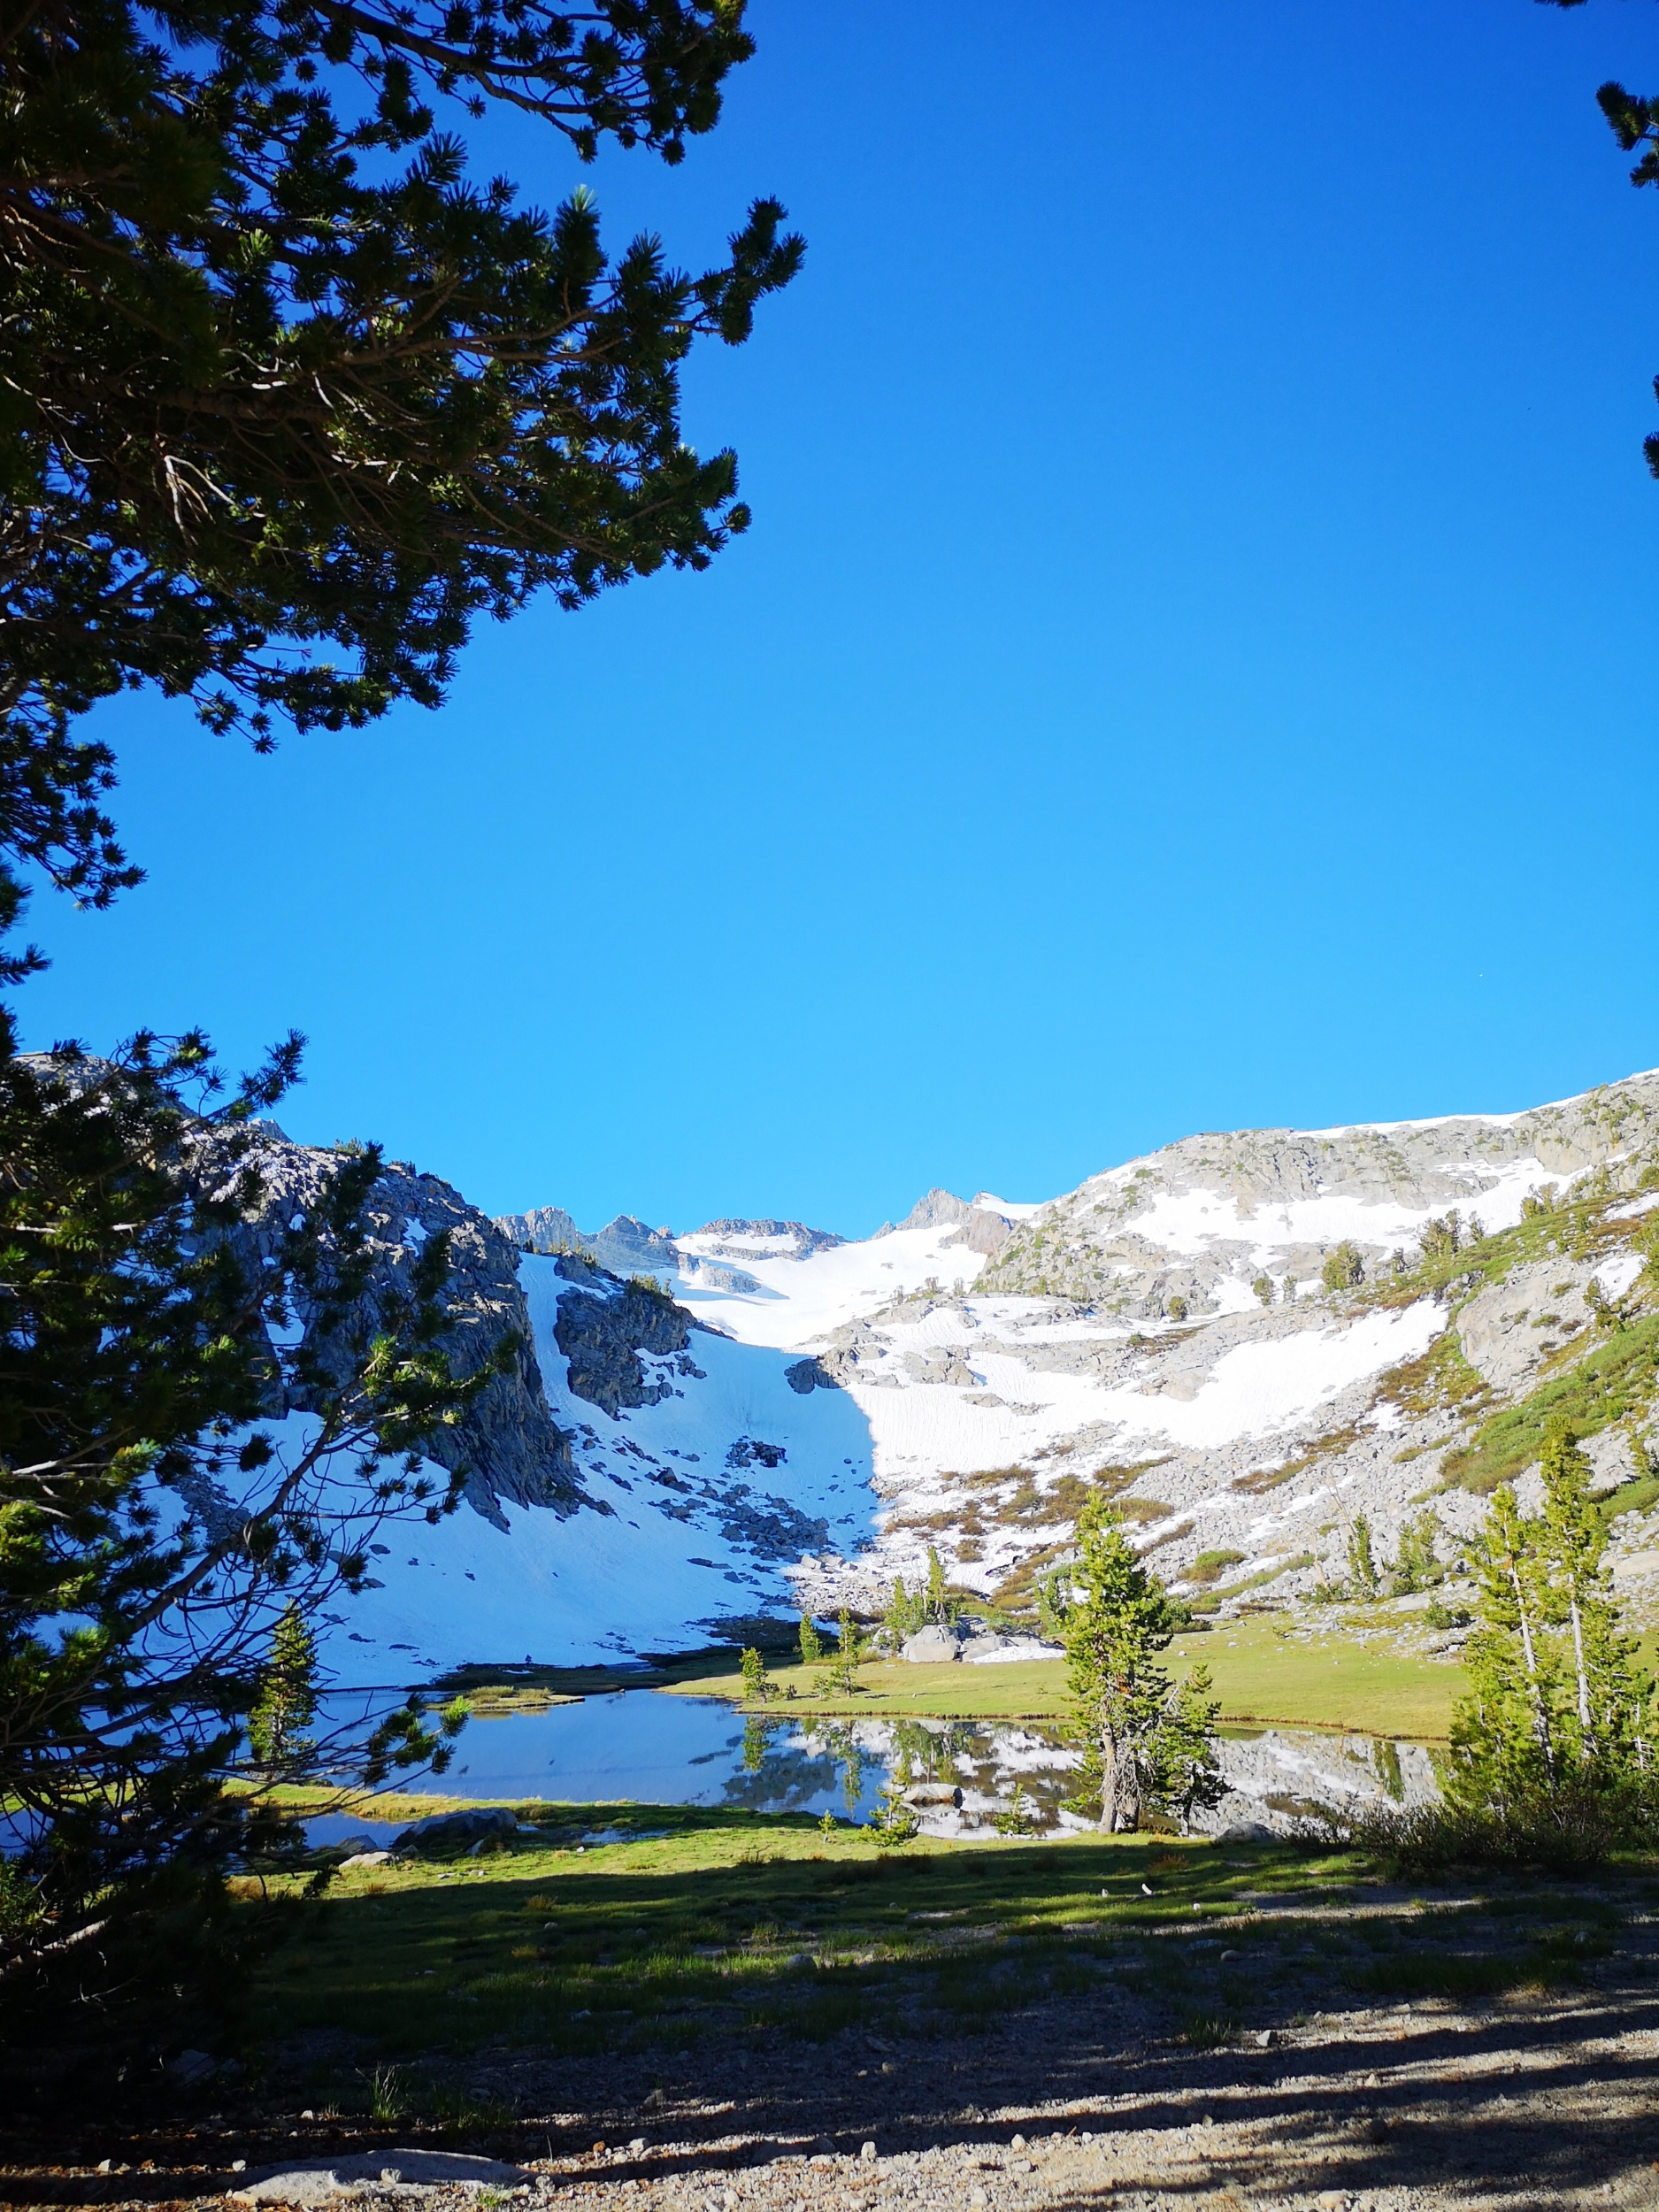 Our last campspot by Lyell creek just beneath Donahue pass.